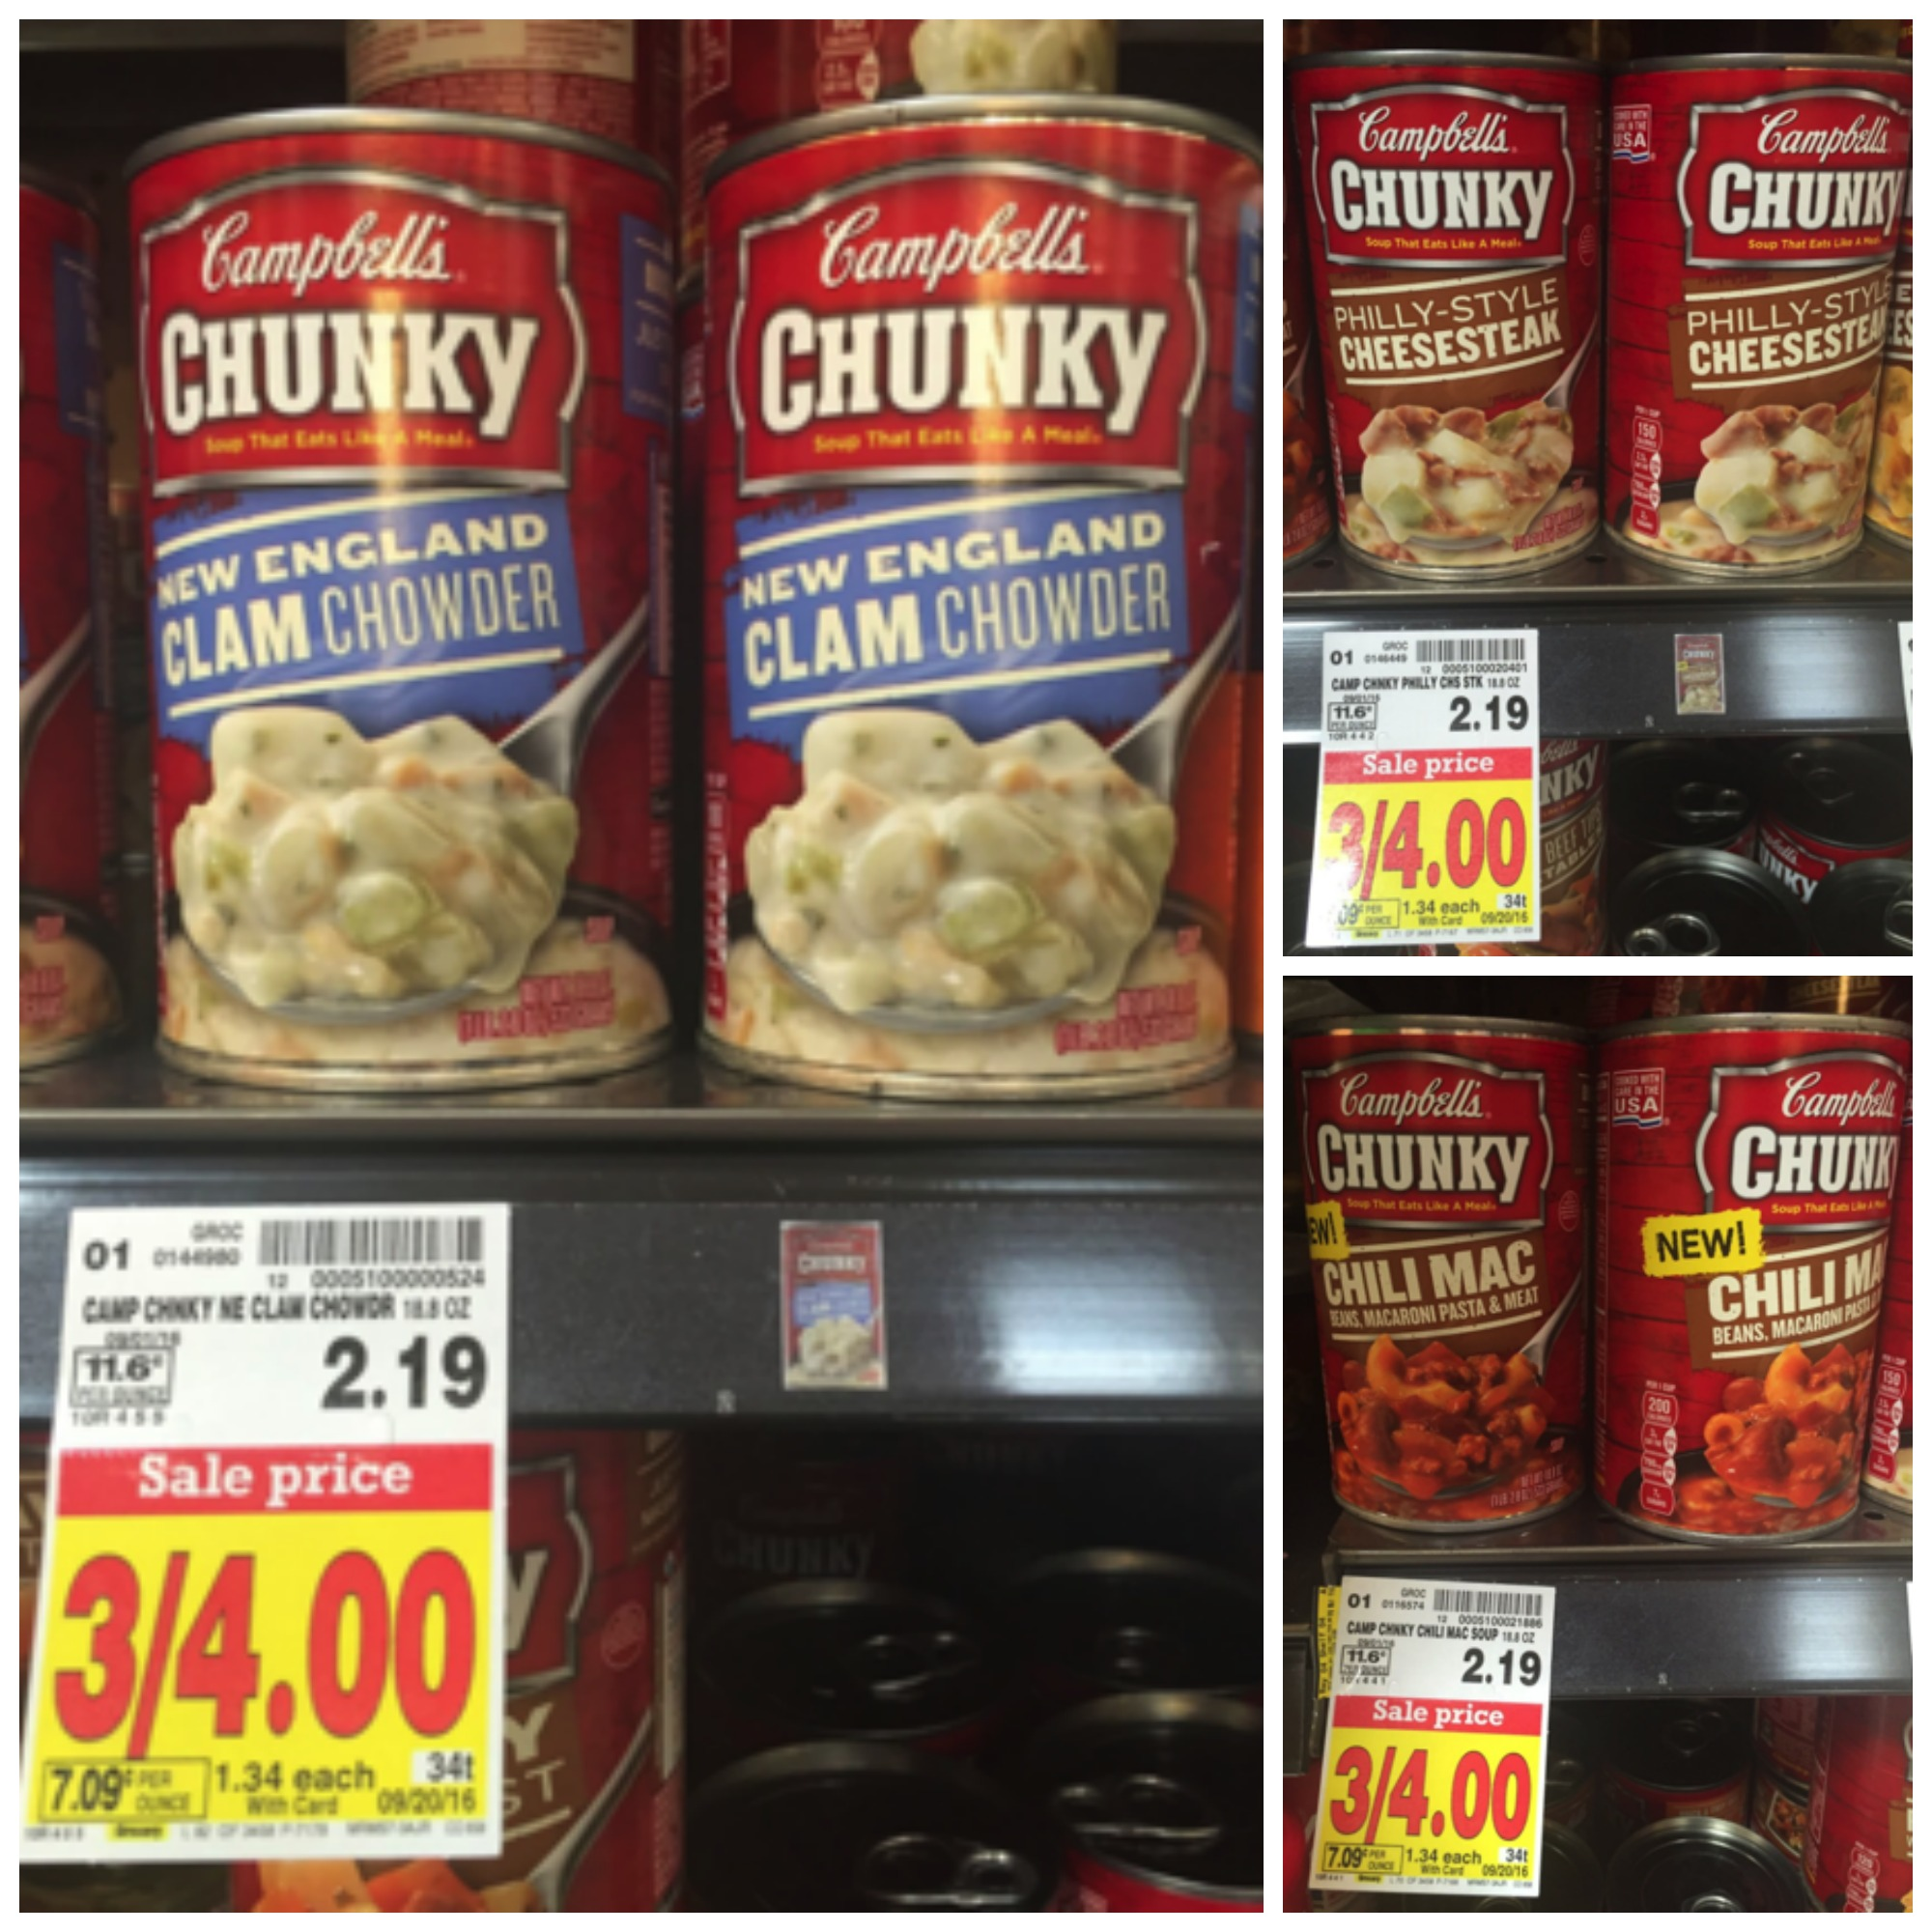 campbells-chunky-collage